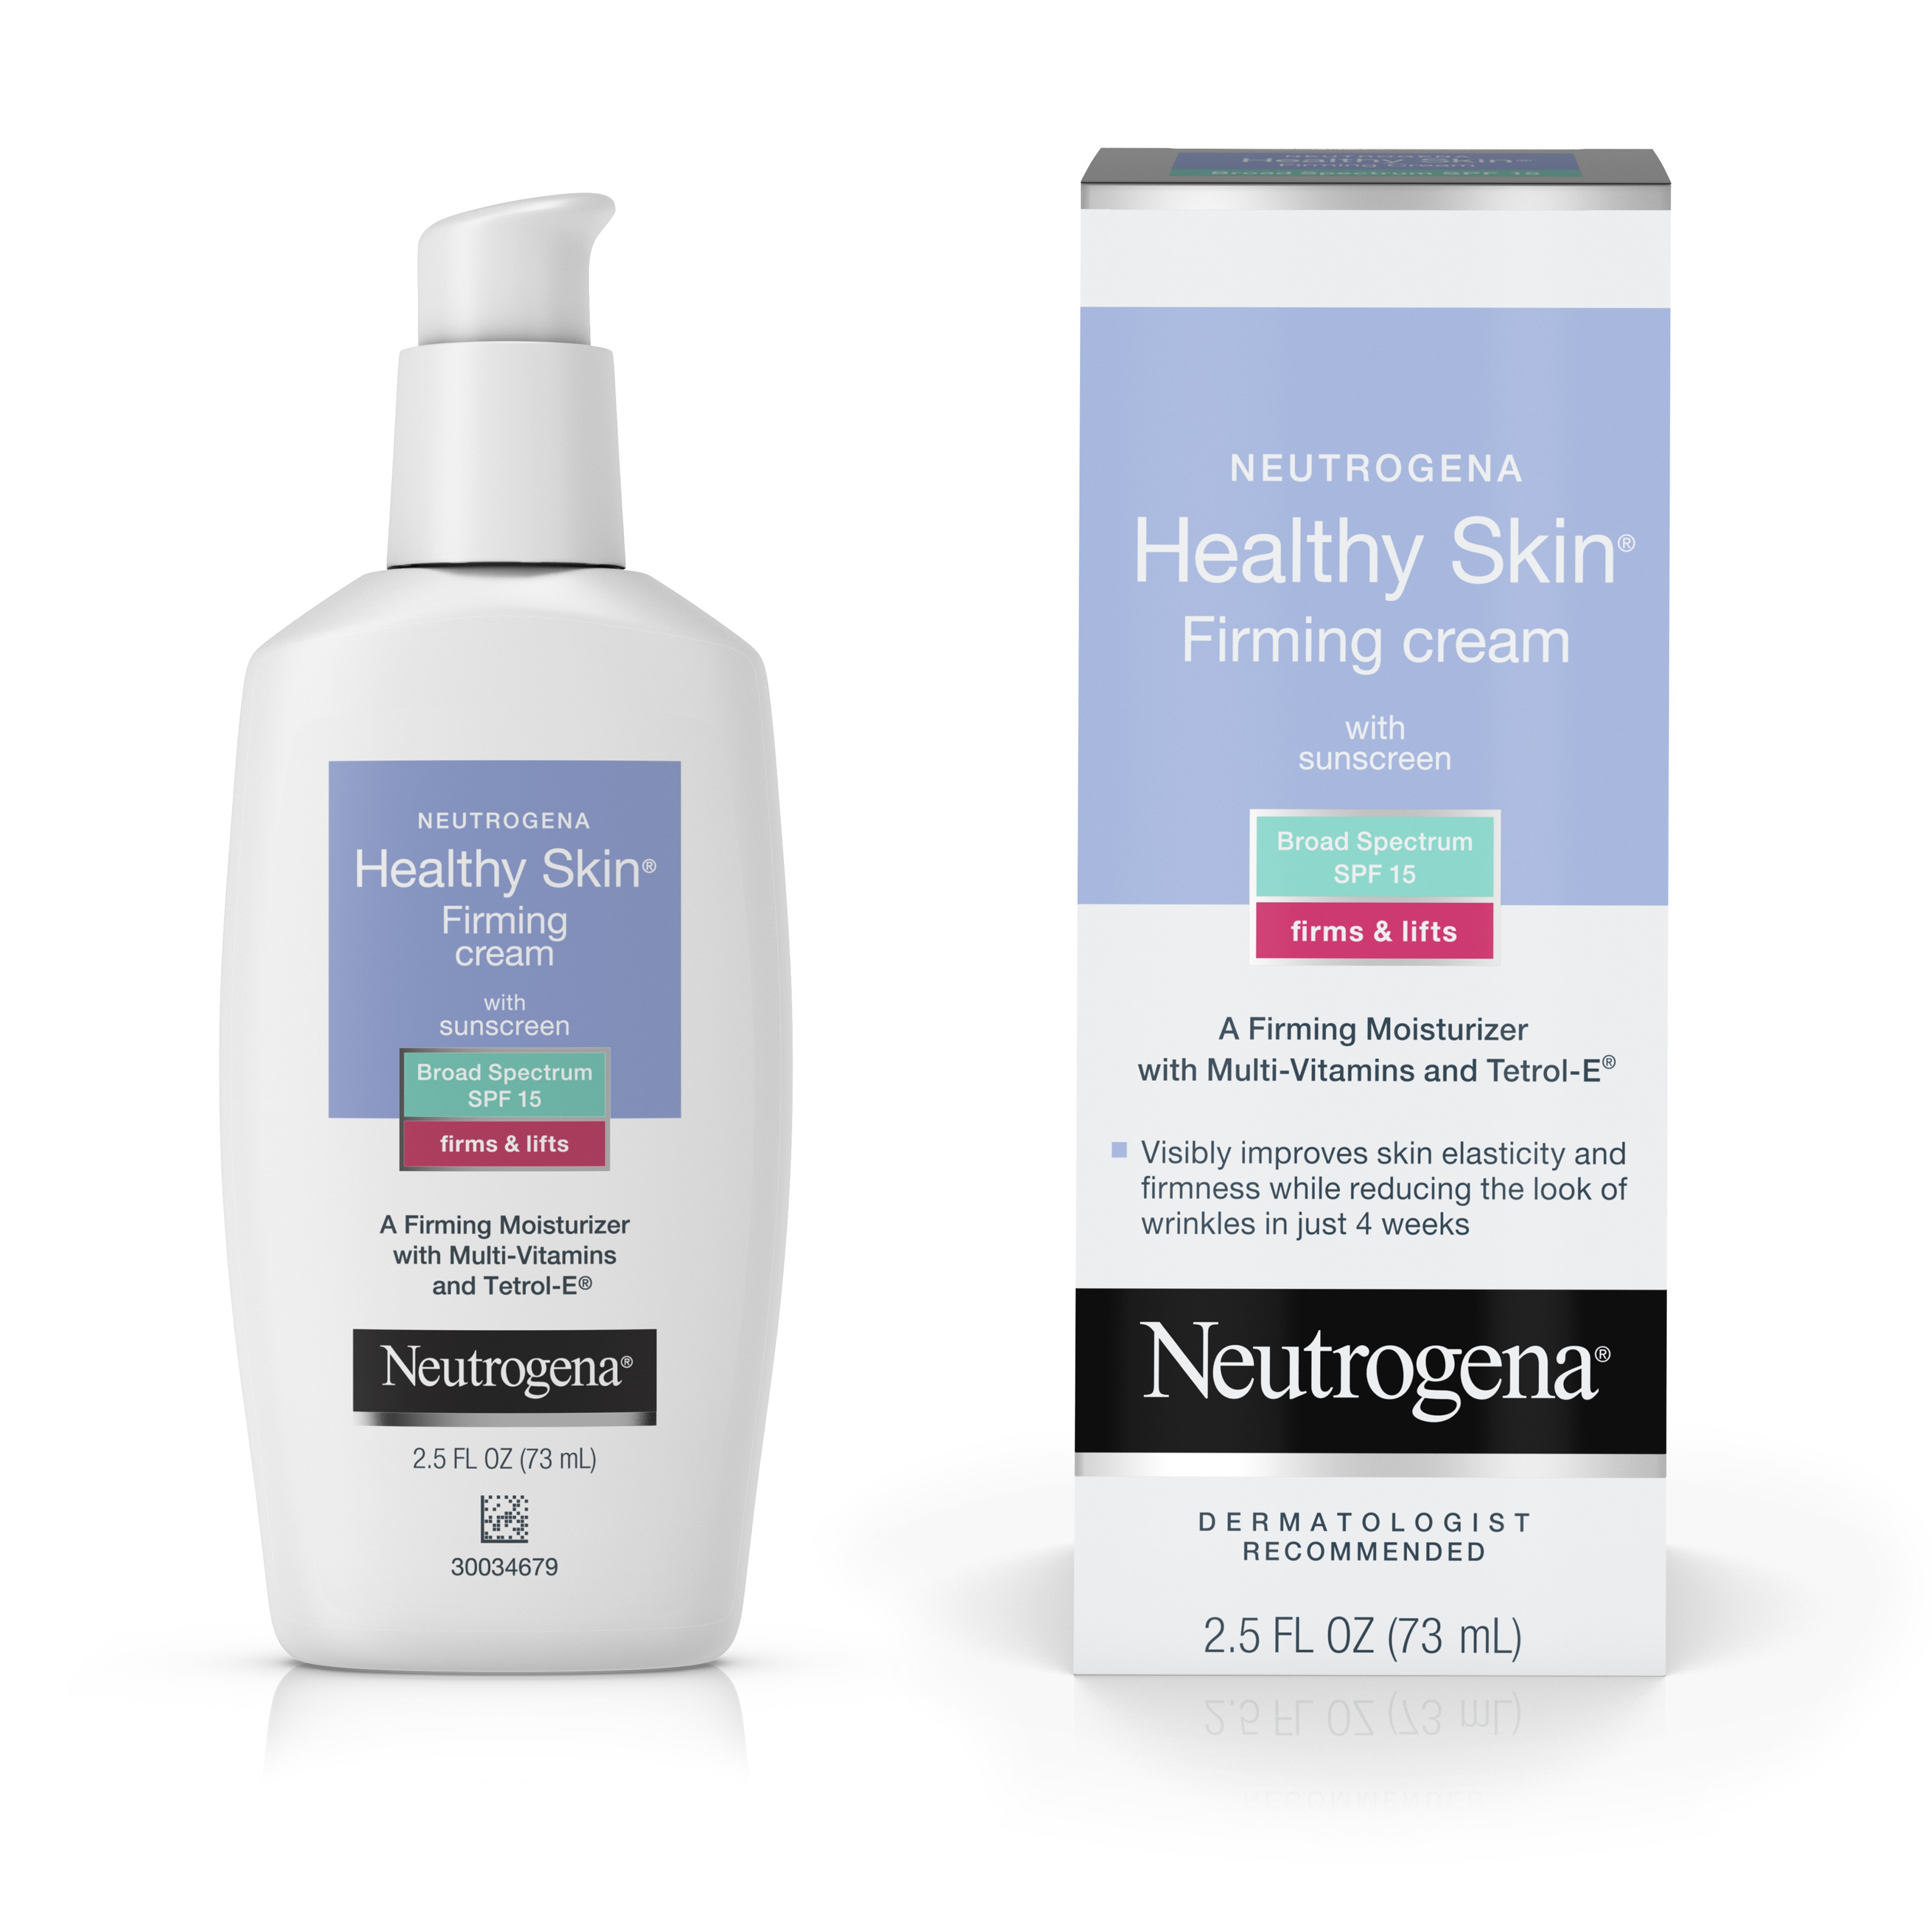 Neutrogena Healthy Skin Face Firming Cream with SPF 15, 2.5 fl. oz